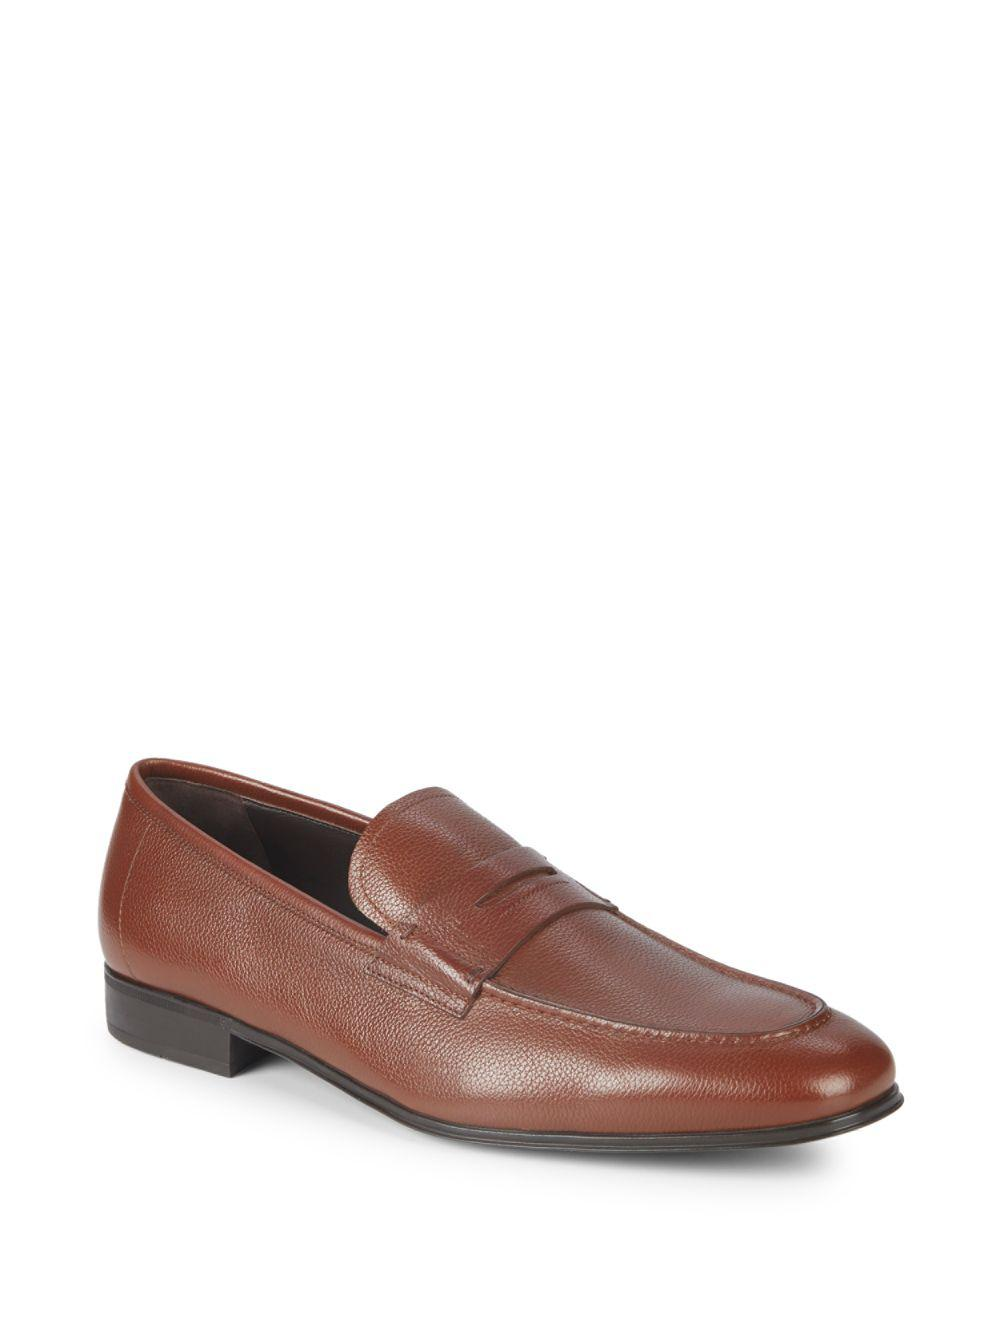 09810bc9a26 Lyst - Ferragamo Fiorino Leather Penny Loafers in Brown for Men